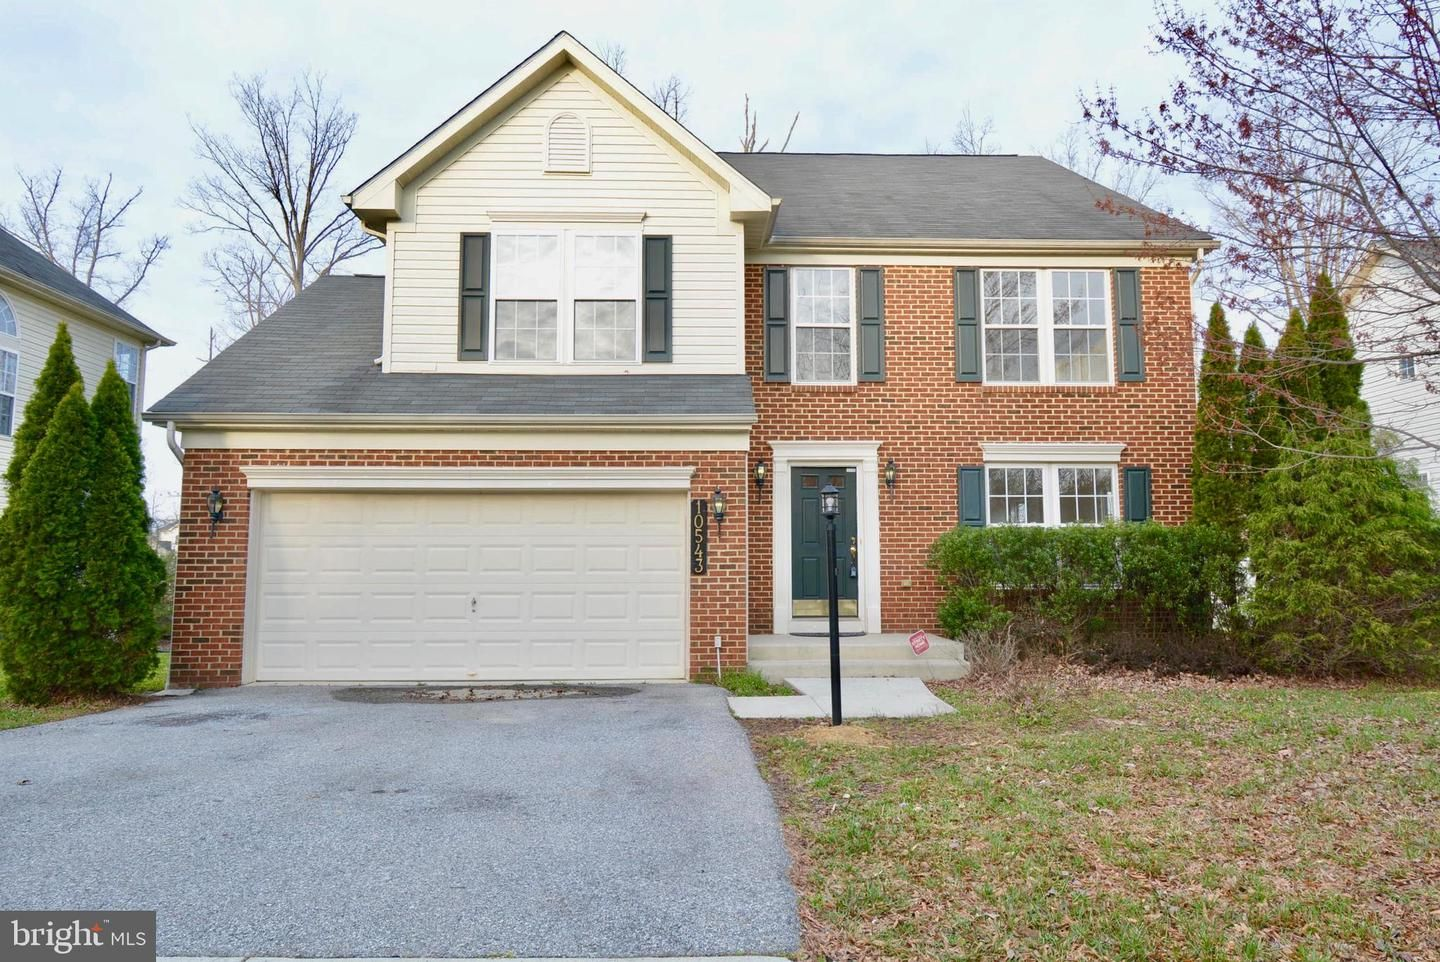 Amazing 10543 Sugarberry St Waldorf Md 20603 4 Bed 3 5 Bath Single Family Home Mls Mdch200356 37 Photos Trulia Download Free Architecture Designs Scobabritishbridgeorg